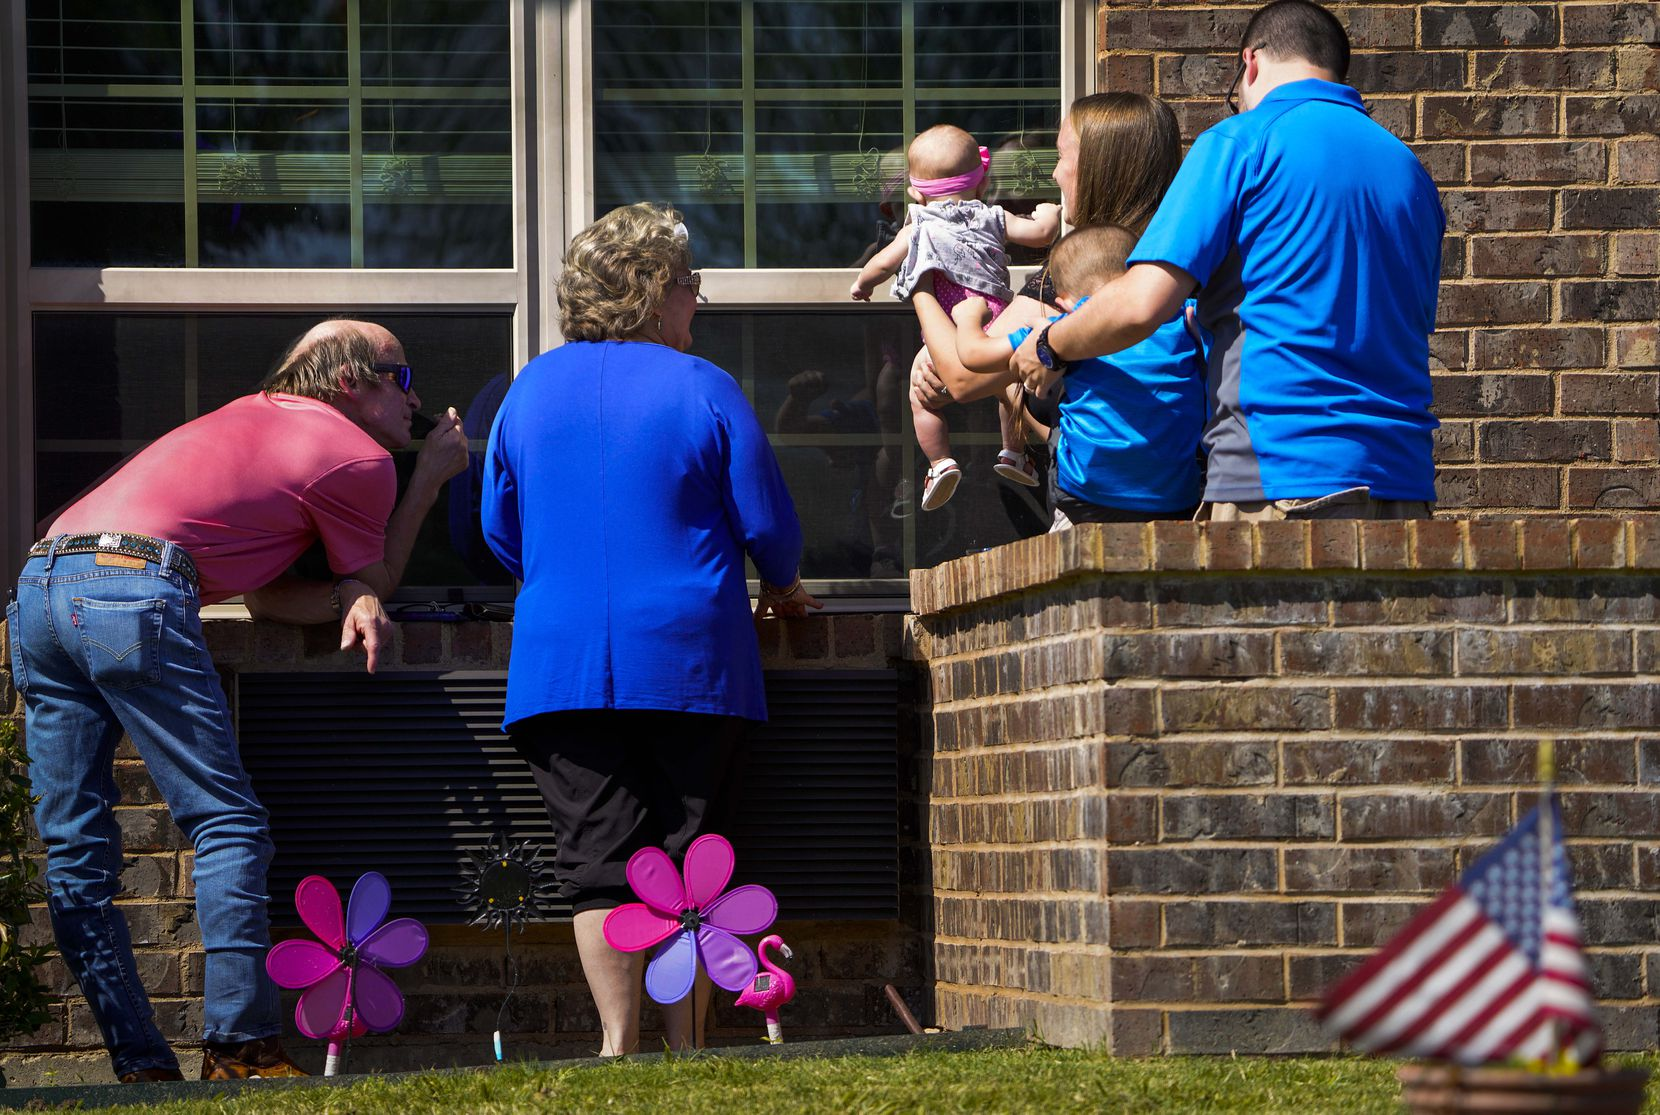 Meagan Myers held her 5-month-old daughter, Callie, up to the window of the baby's great-grandmother Peggy White on Mother's Day at The Pavilion at Creekwood, a health care and rehabilitation center in Mansfield, due to COVID-19 precautions on May 10, 2020. White had a stroke in late January and is due to be released from the facility at the end of May. Four generations of her family were present as her children, grandchildren and great-grandchildren visited her from outside the window. From left are, Randy White, Cindy Goleman, Meagan Myers, Chase Myers and Robert Myers.